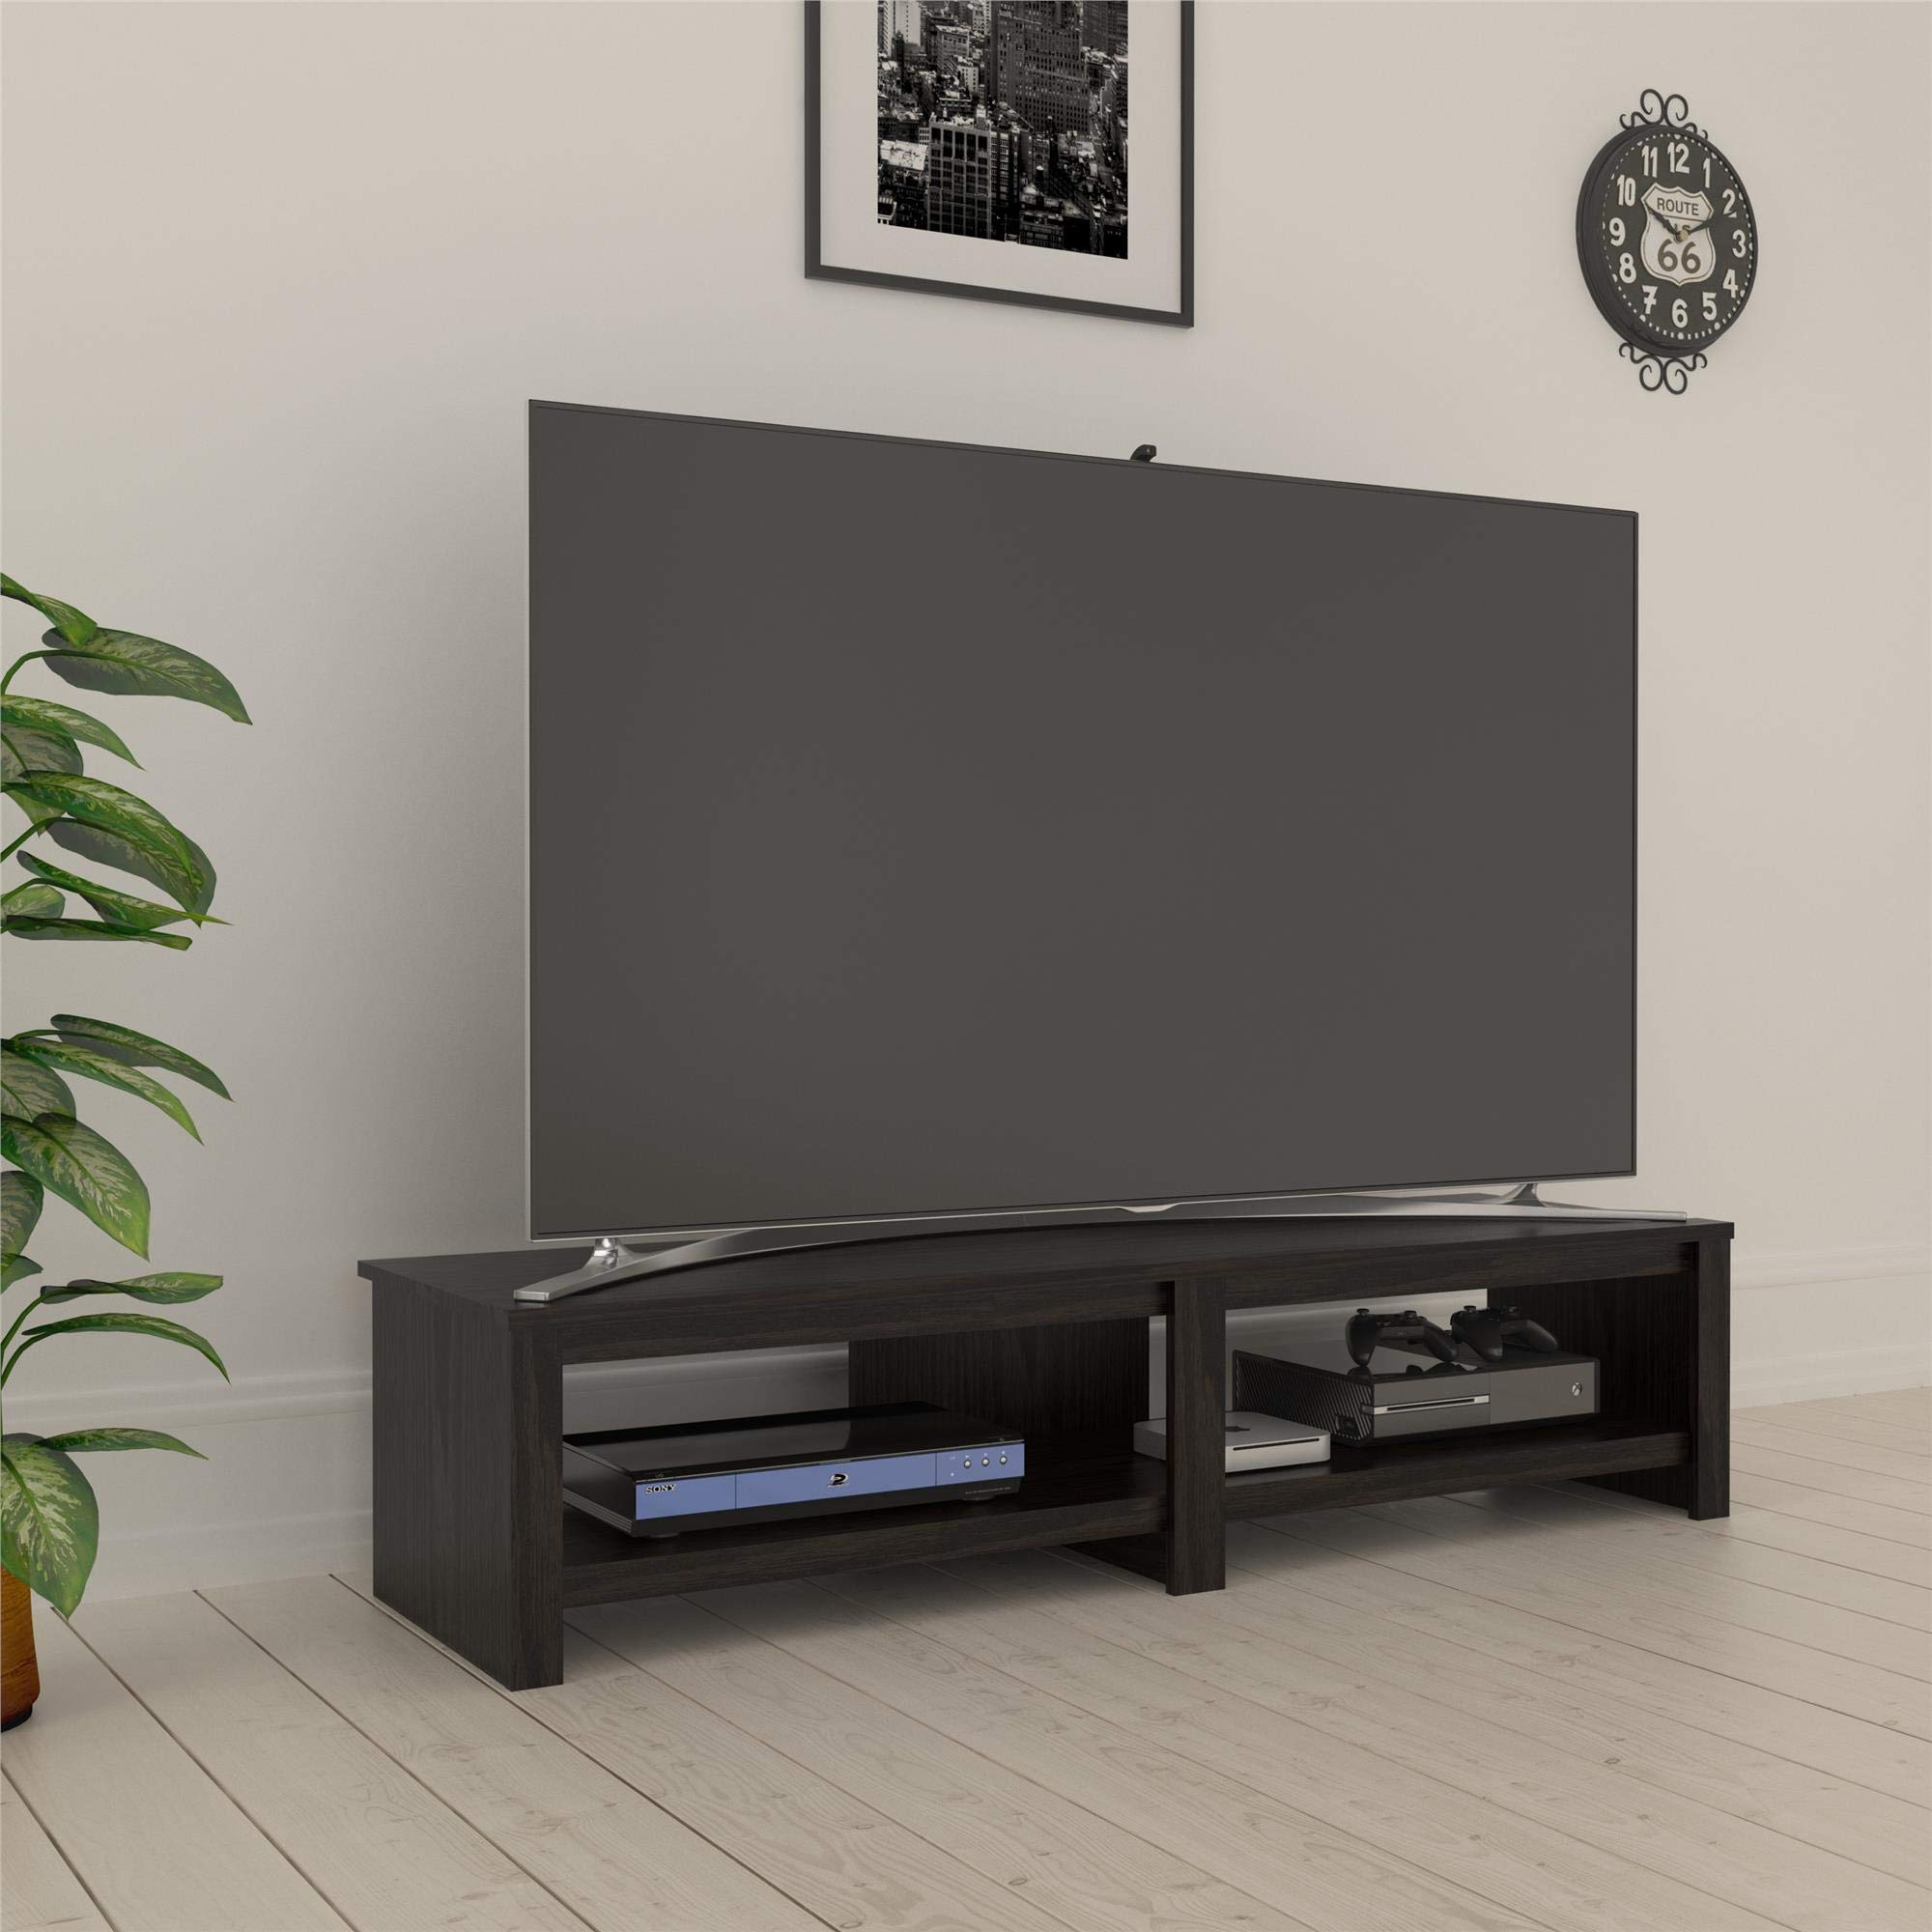 Ameriwood Home RealRooms Tally TV Stand for TVs up to 74'', Espresso by Ameriwood Home